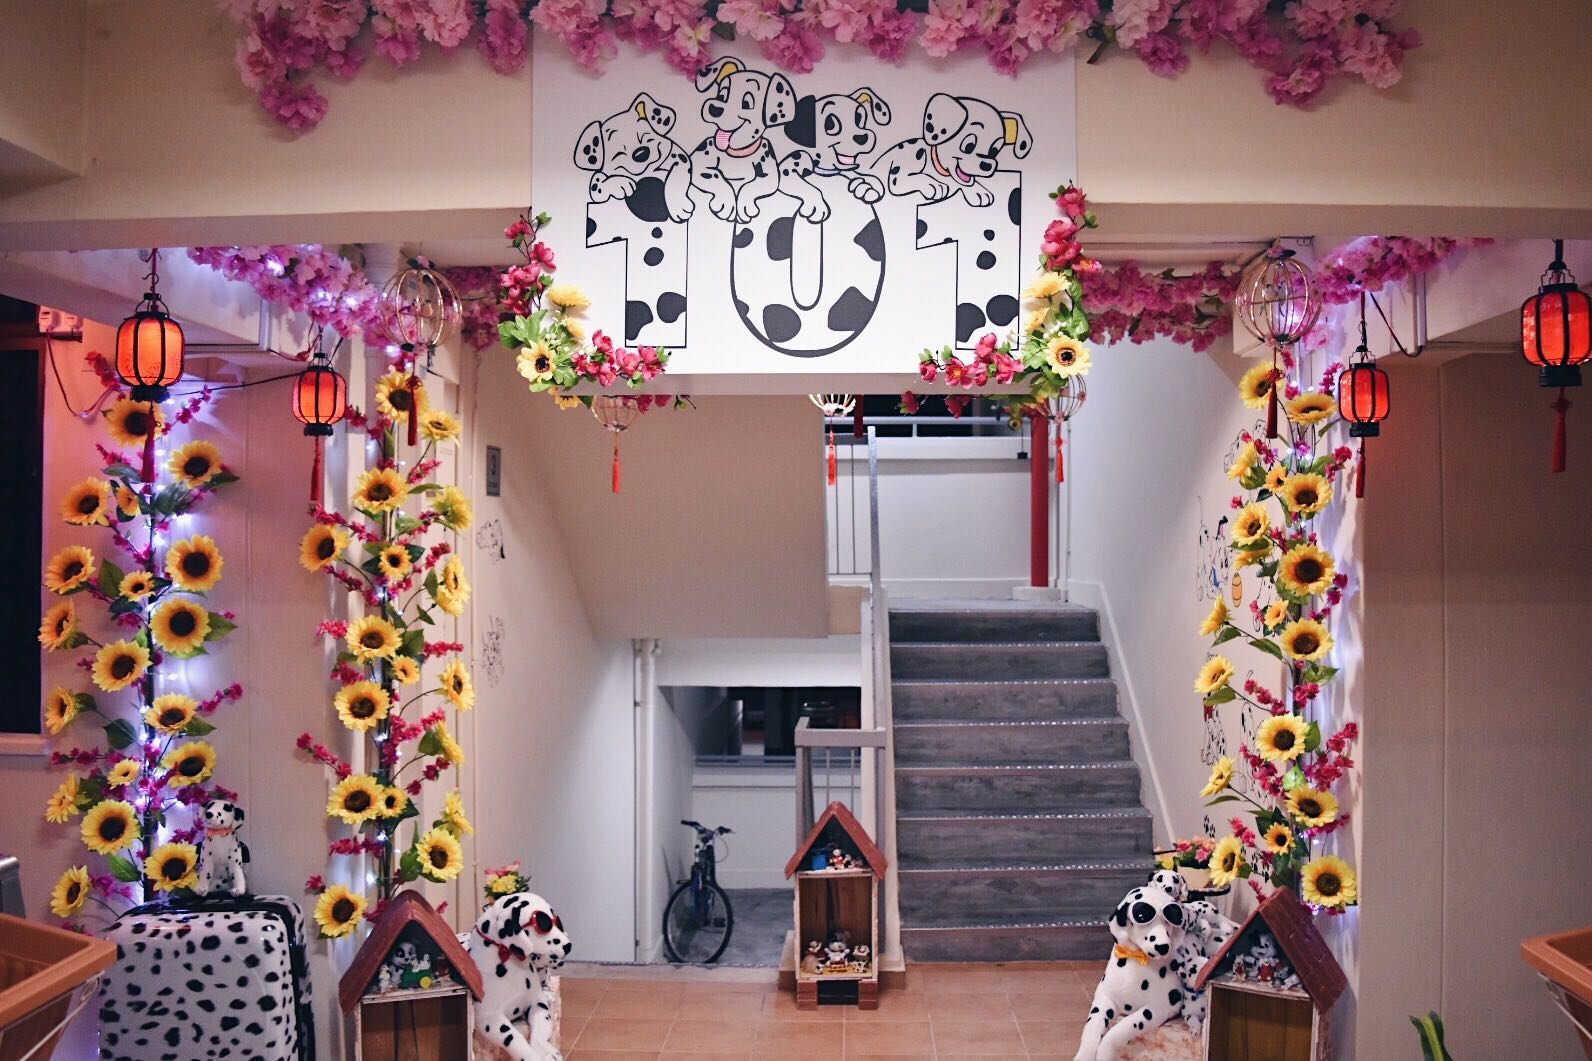 Bedok resident spends decorating hdb home and corridor to